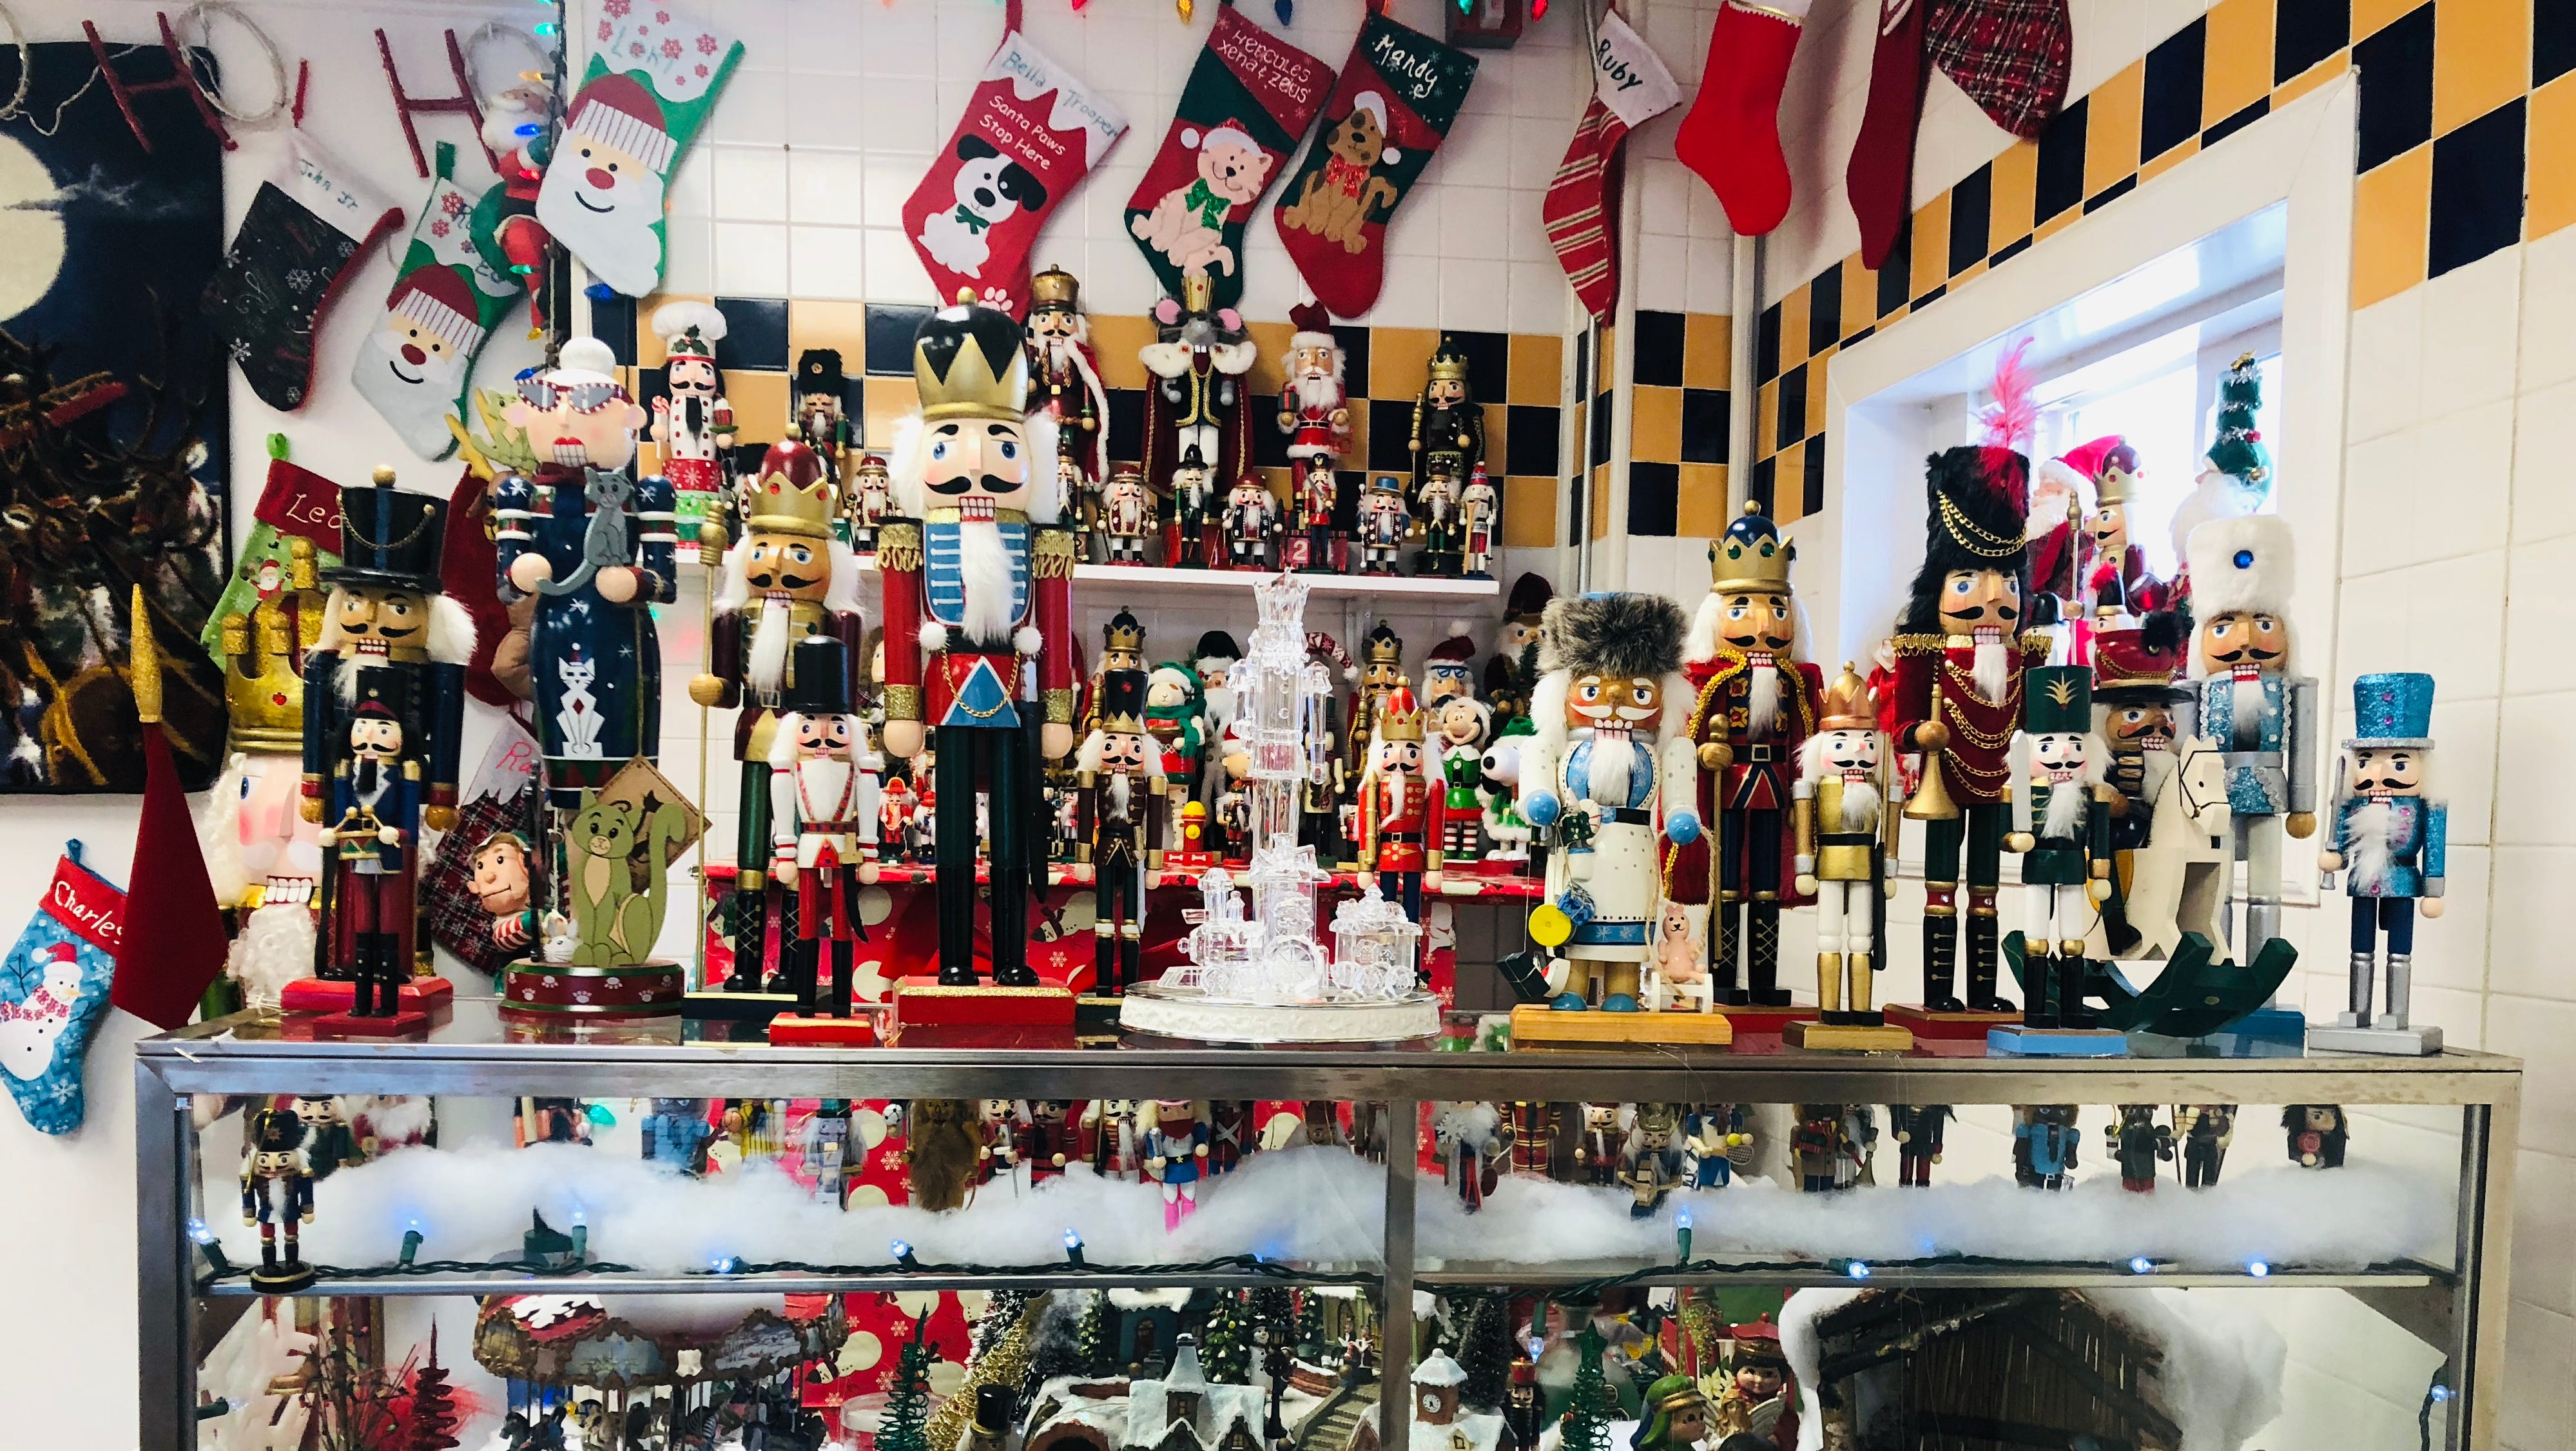 Nutcrackers line the walls, shelves and counters...